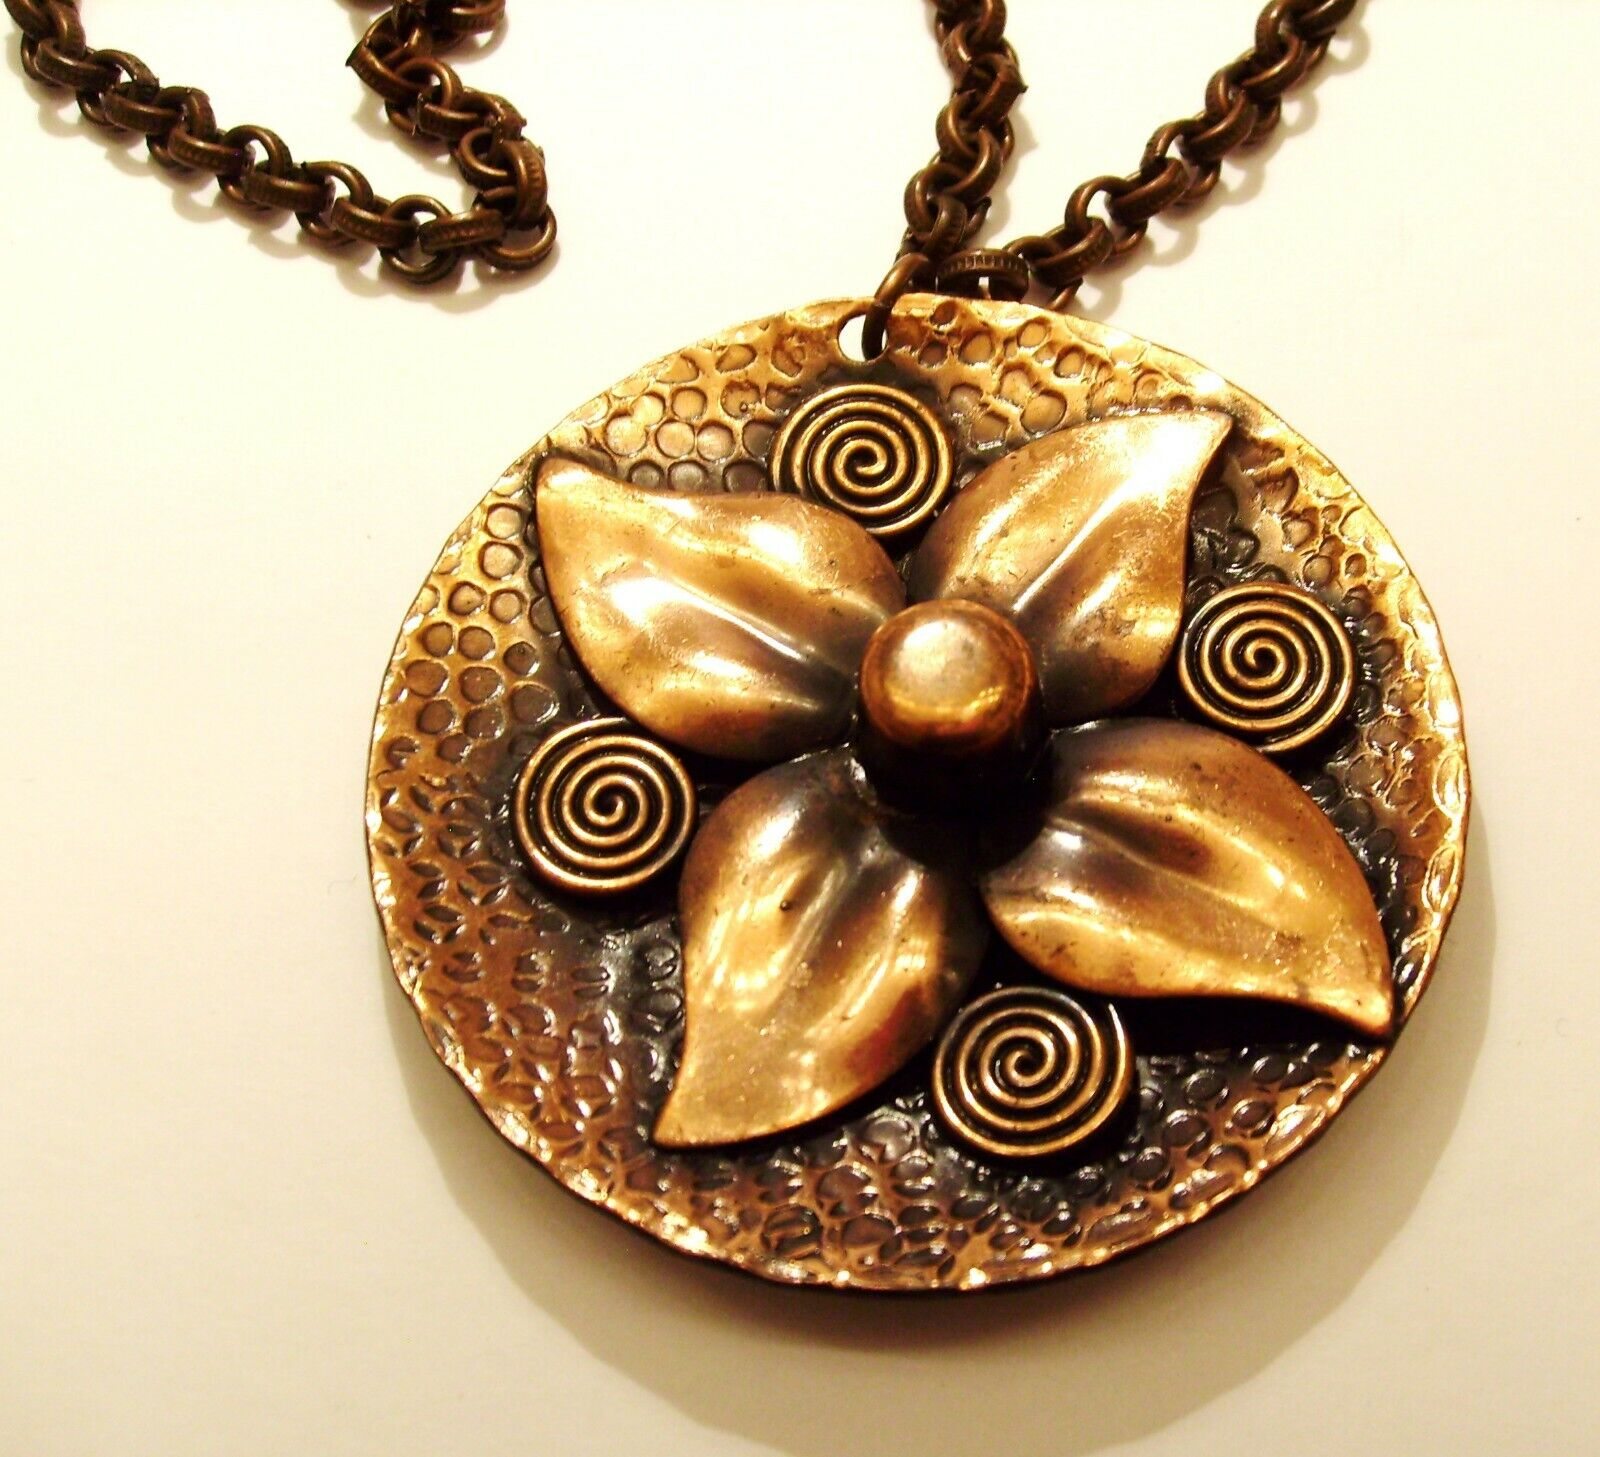 VINTAGE COPPER NECKLACE WITH 2-1/2 ROUND FLOWER CHARM SIGNED - $8.99